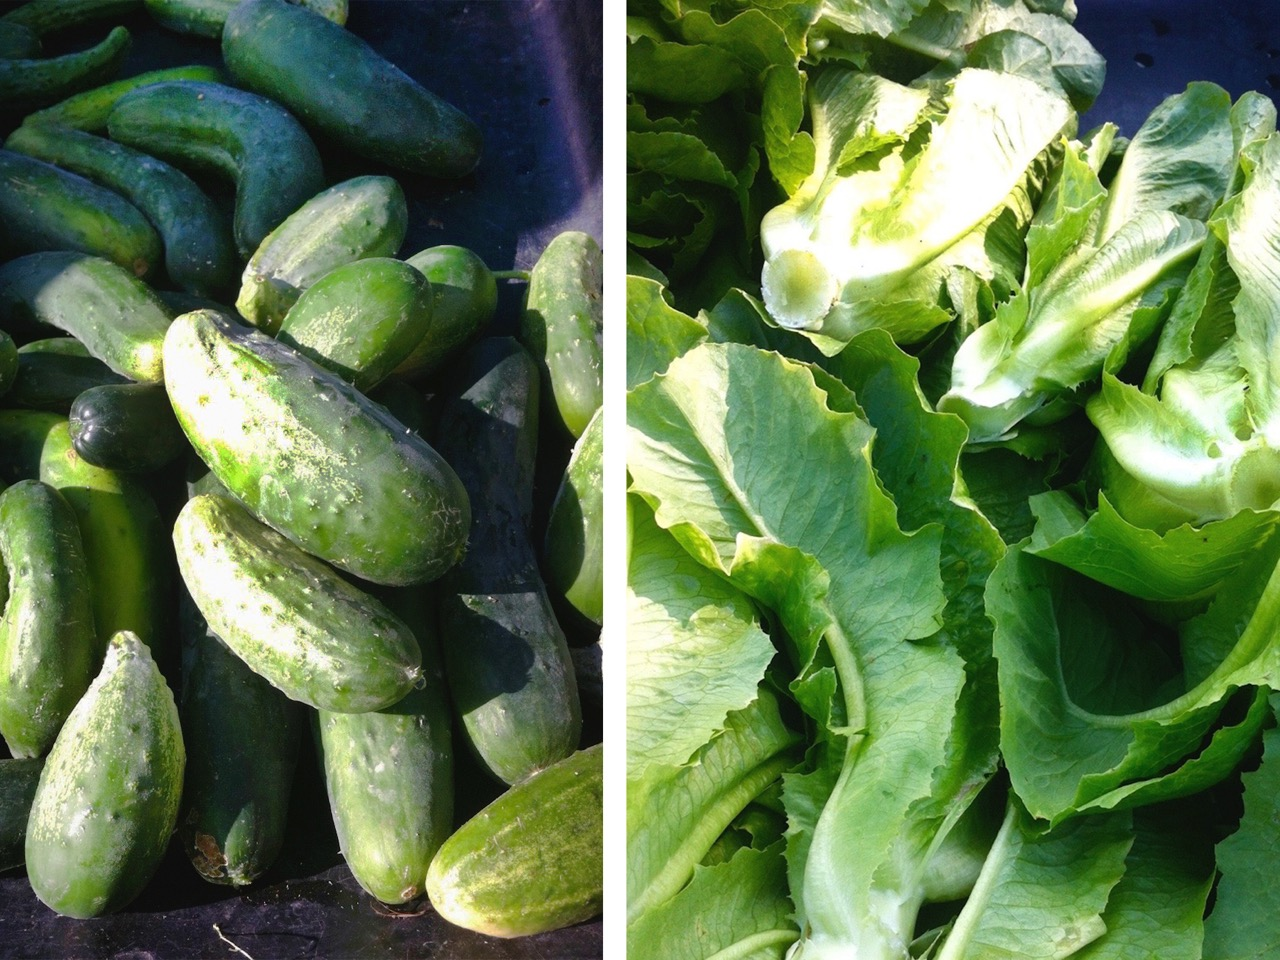 gleaning healthy vegetables